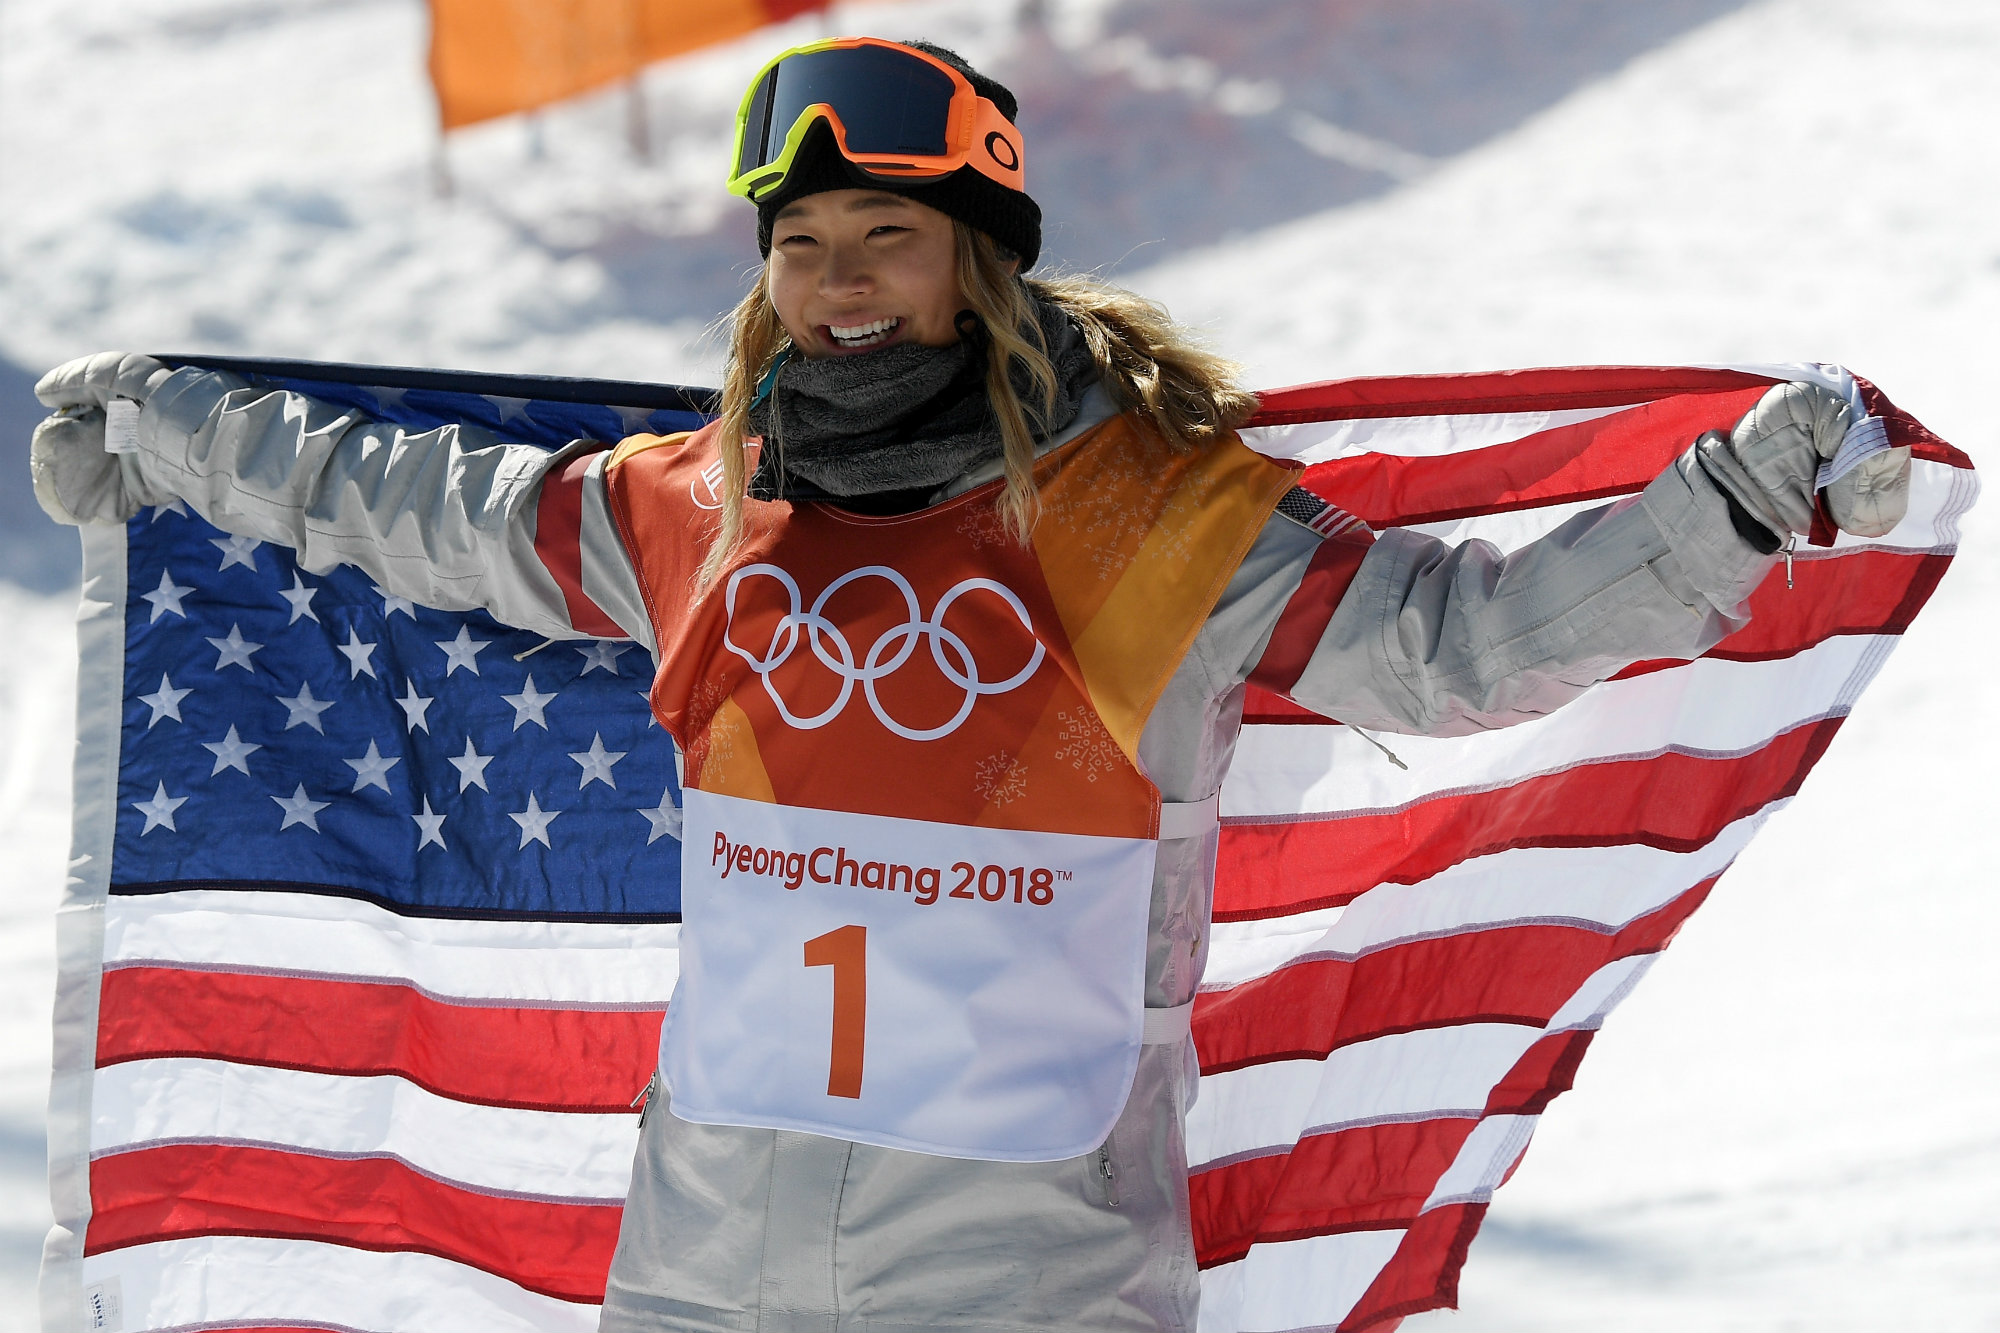 17-Year-Old Snowboarder Chloe Kim Wins a Gold Medal in 1st Olympic Event Ever